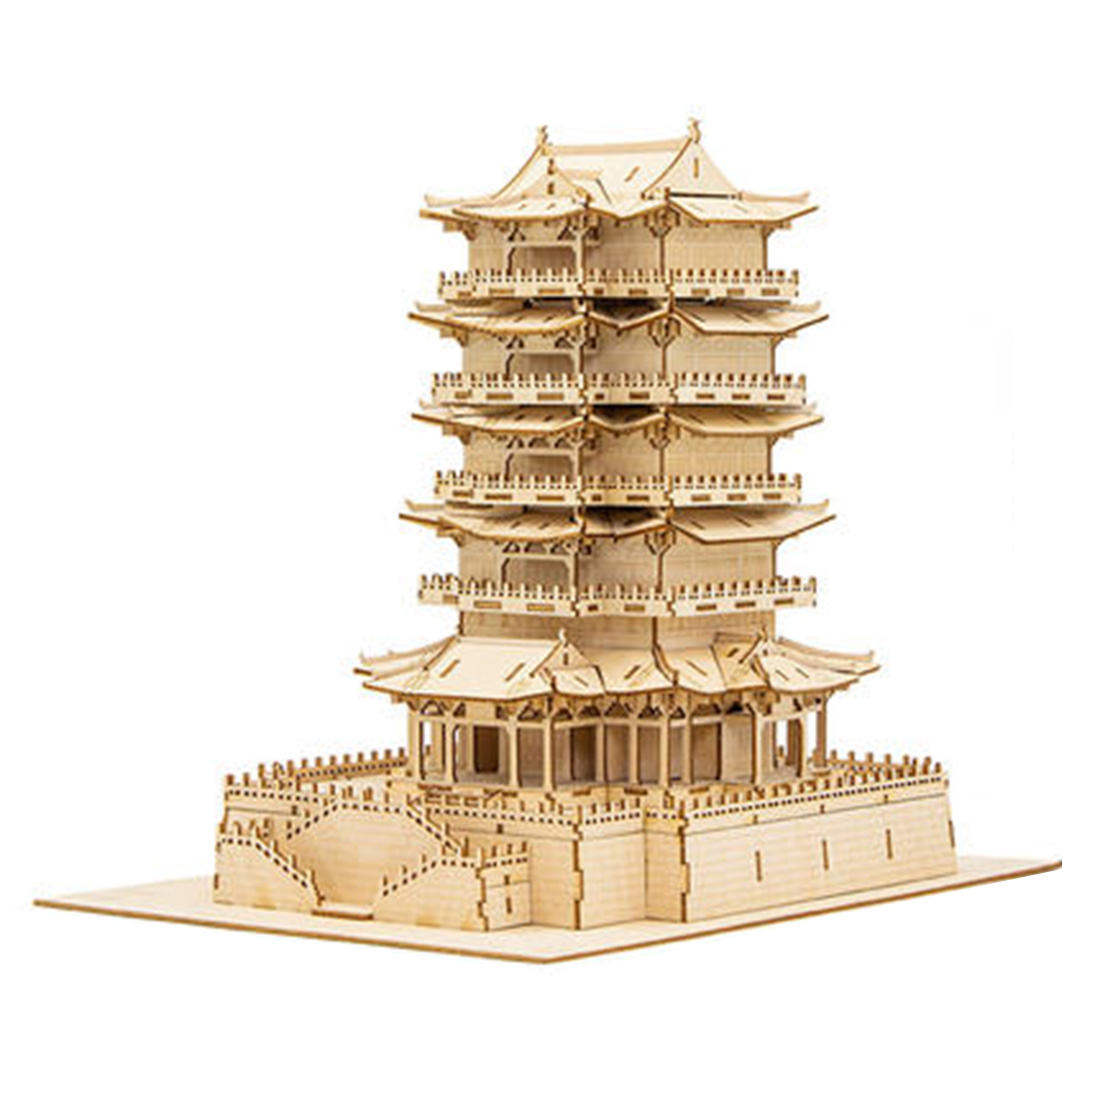 DIY Wooden Puzzle Model Kit Jigsaw Crafts For Home Decor Diy Assembly Toys For Children Hot Sale  - Shao Yang House